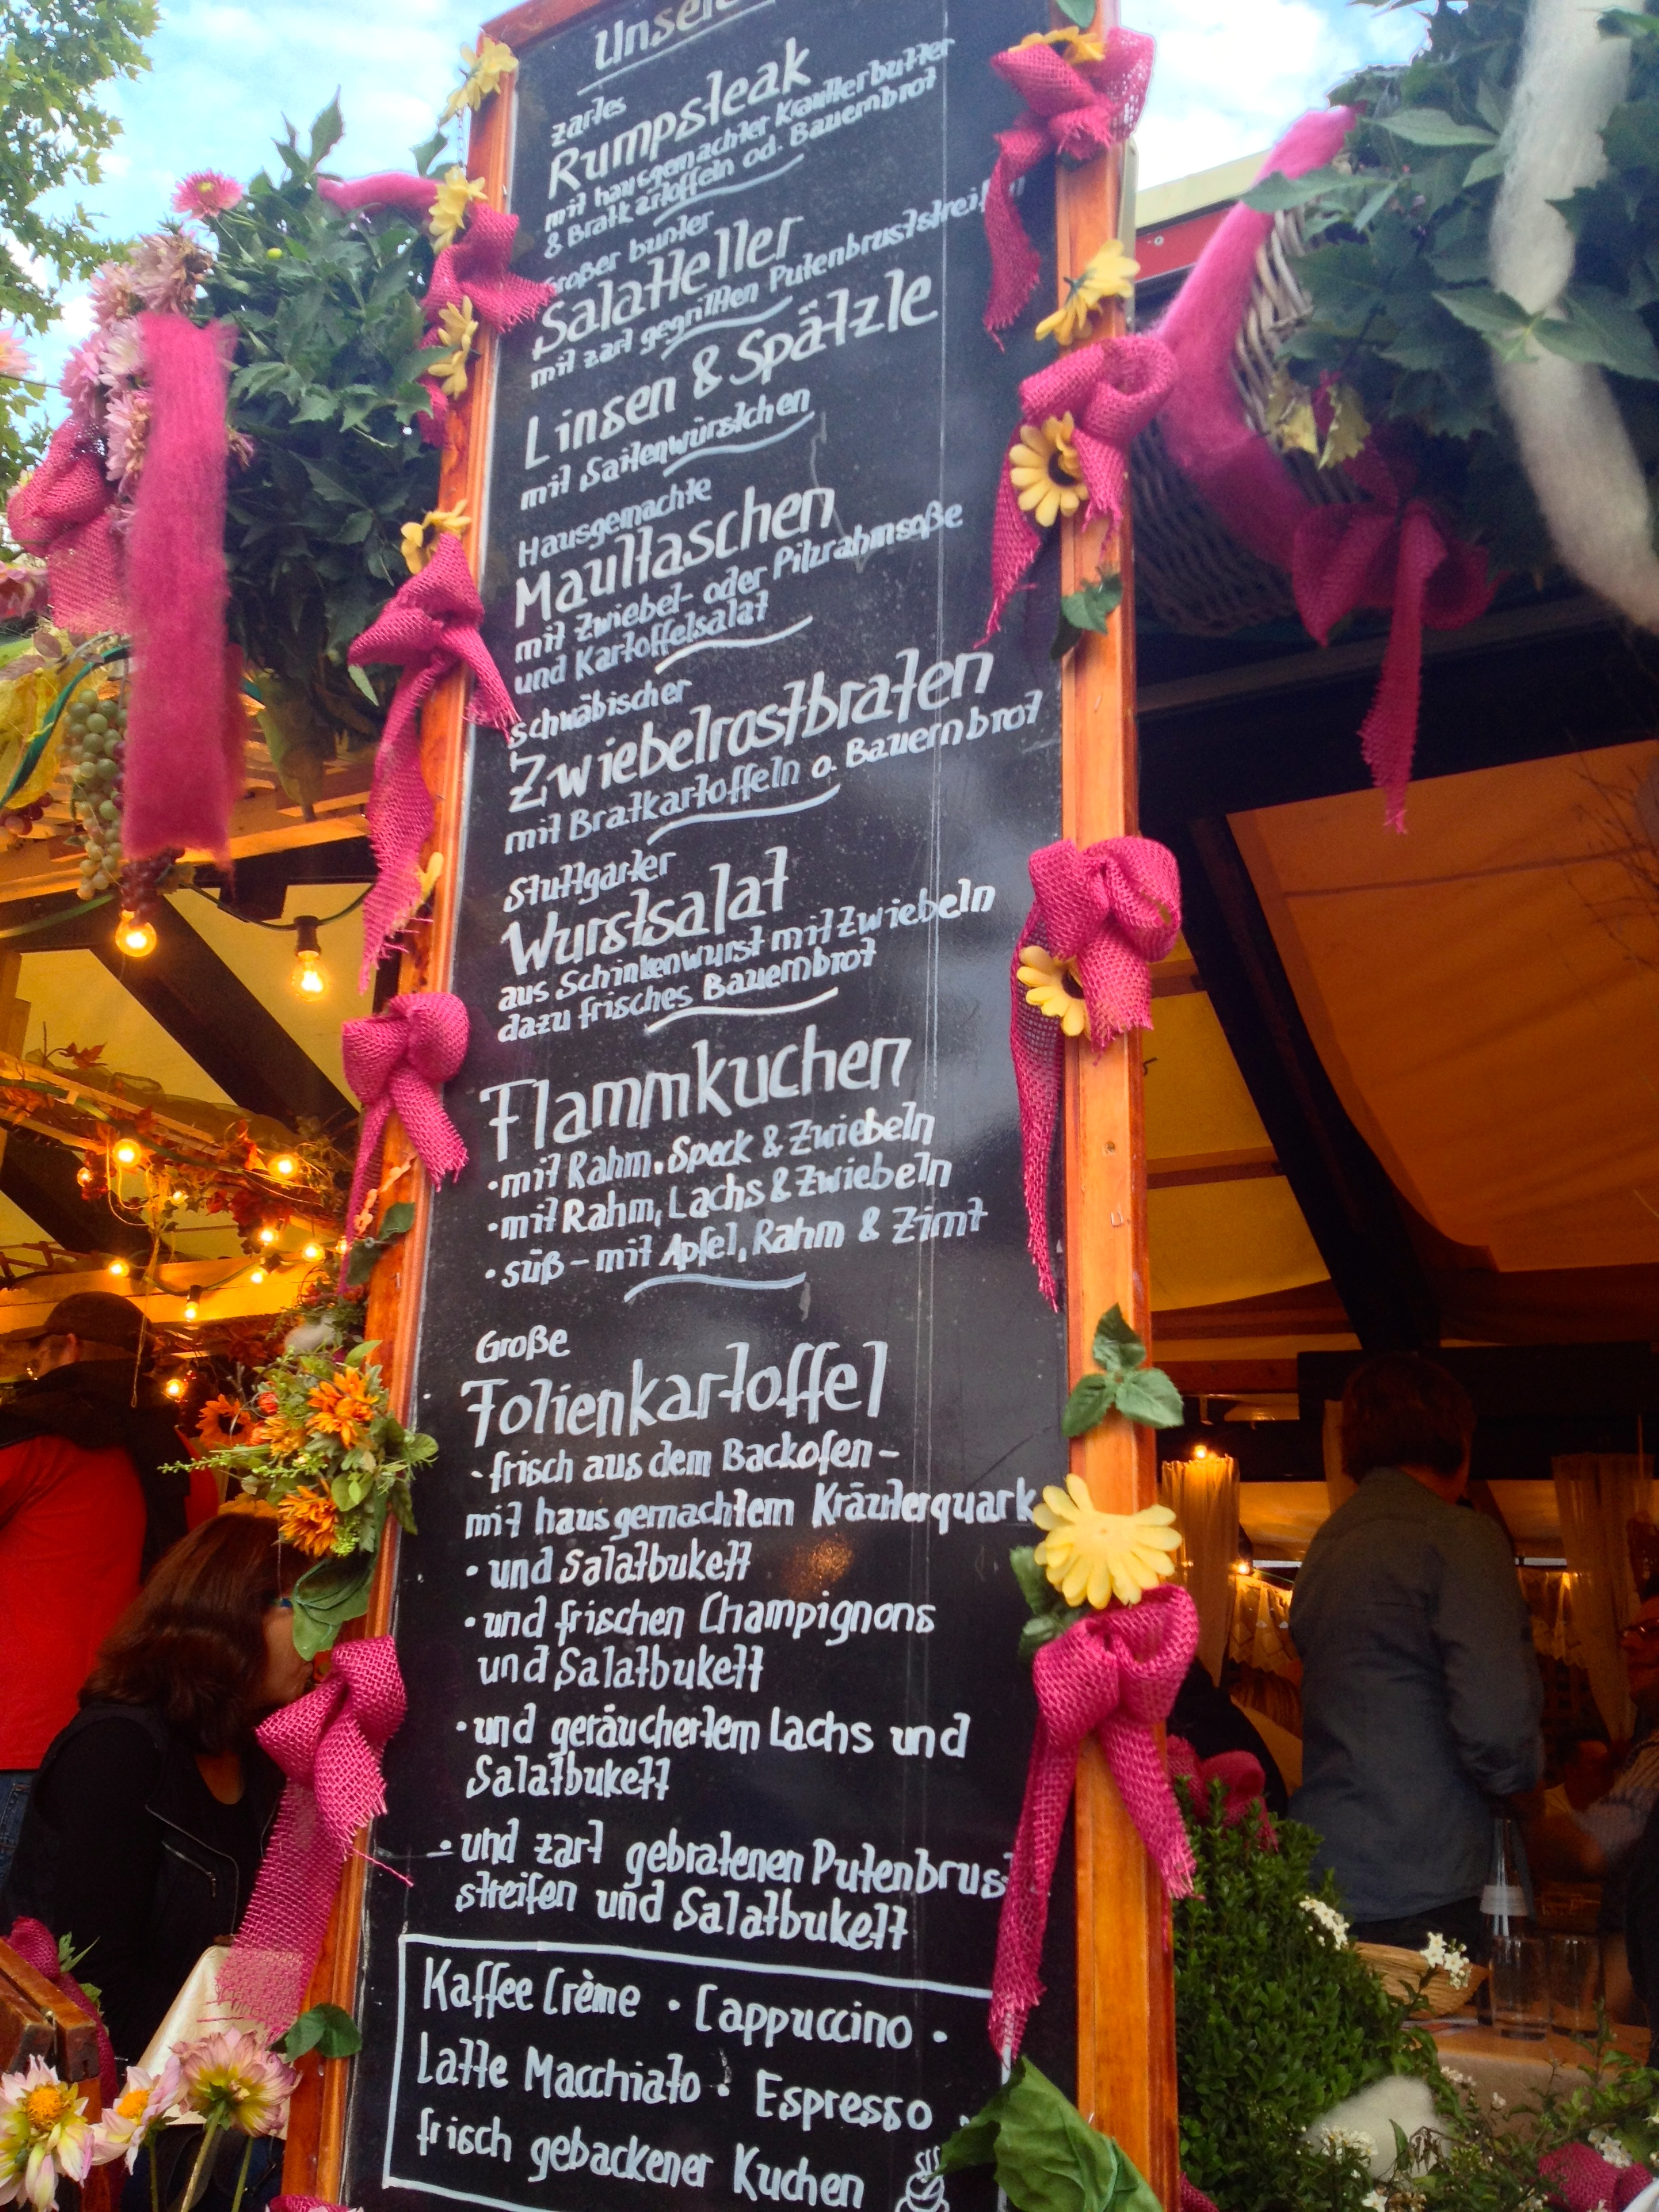 A menu with traditional Swabian dishes